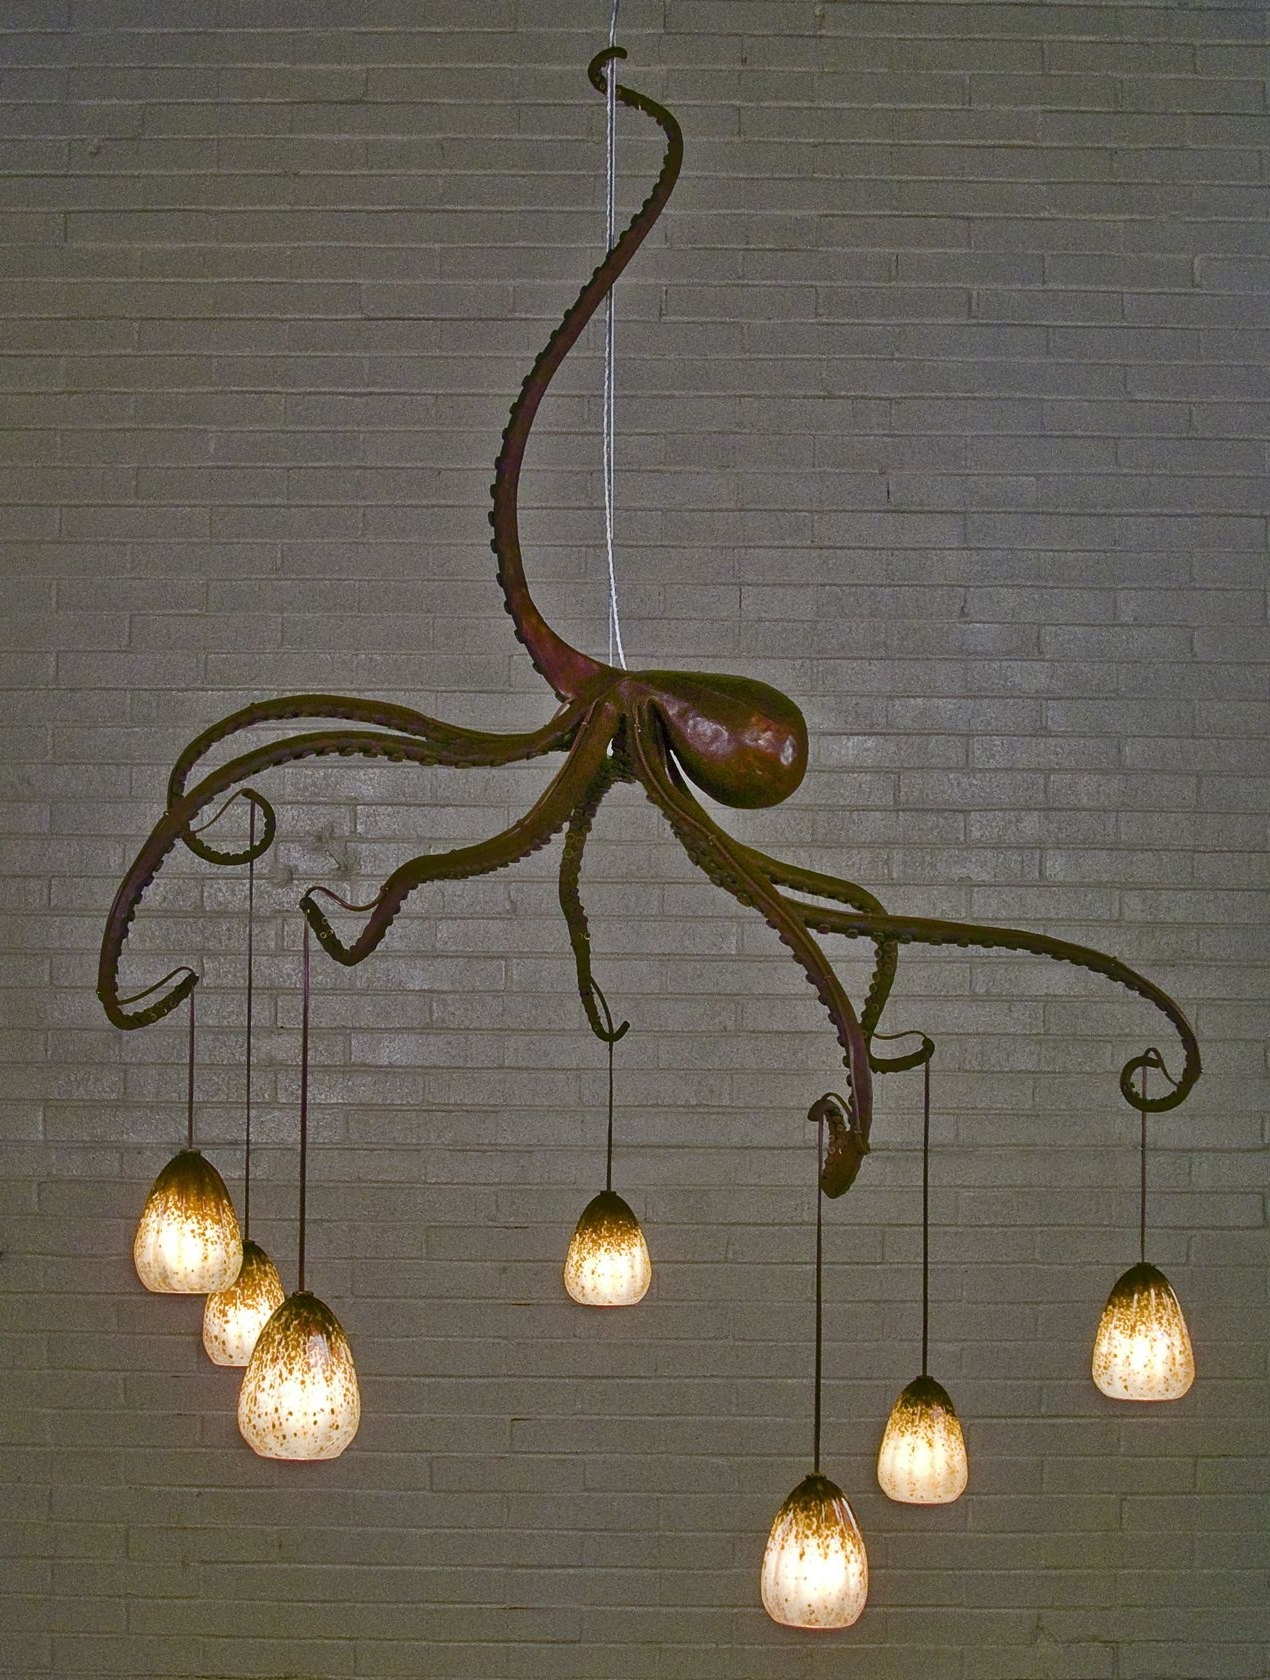 Chandelier For Restaurant Pertaining To Newest Octopus Chandelier Made For Michael Chiarello's Restaurant, Bottega (View 4 of 20)